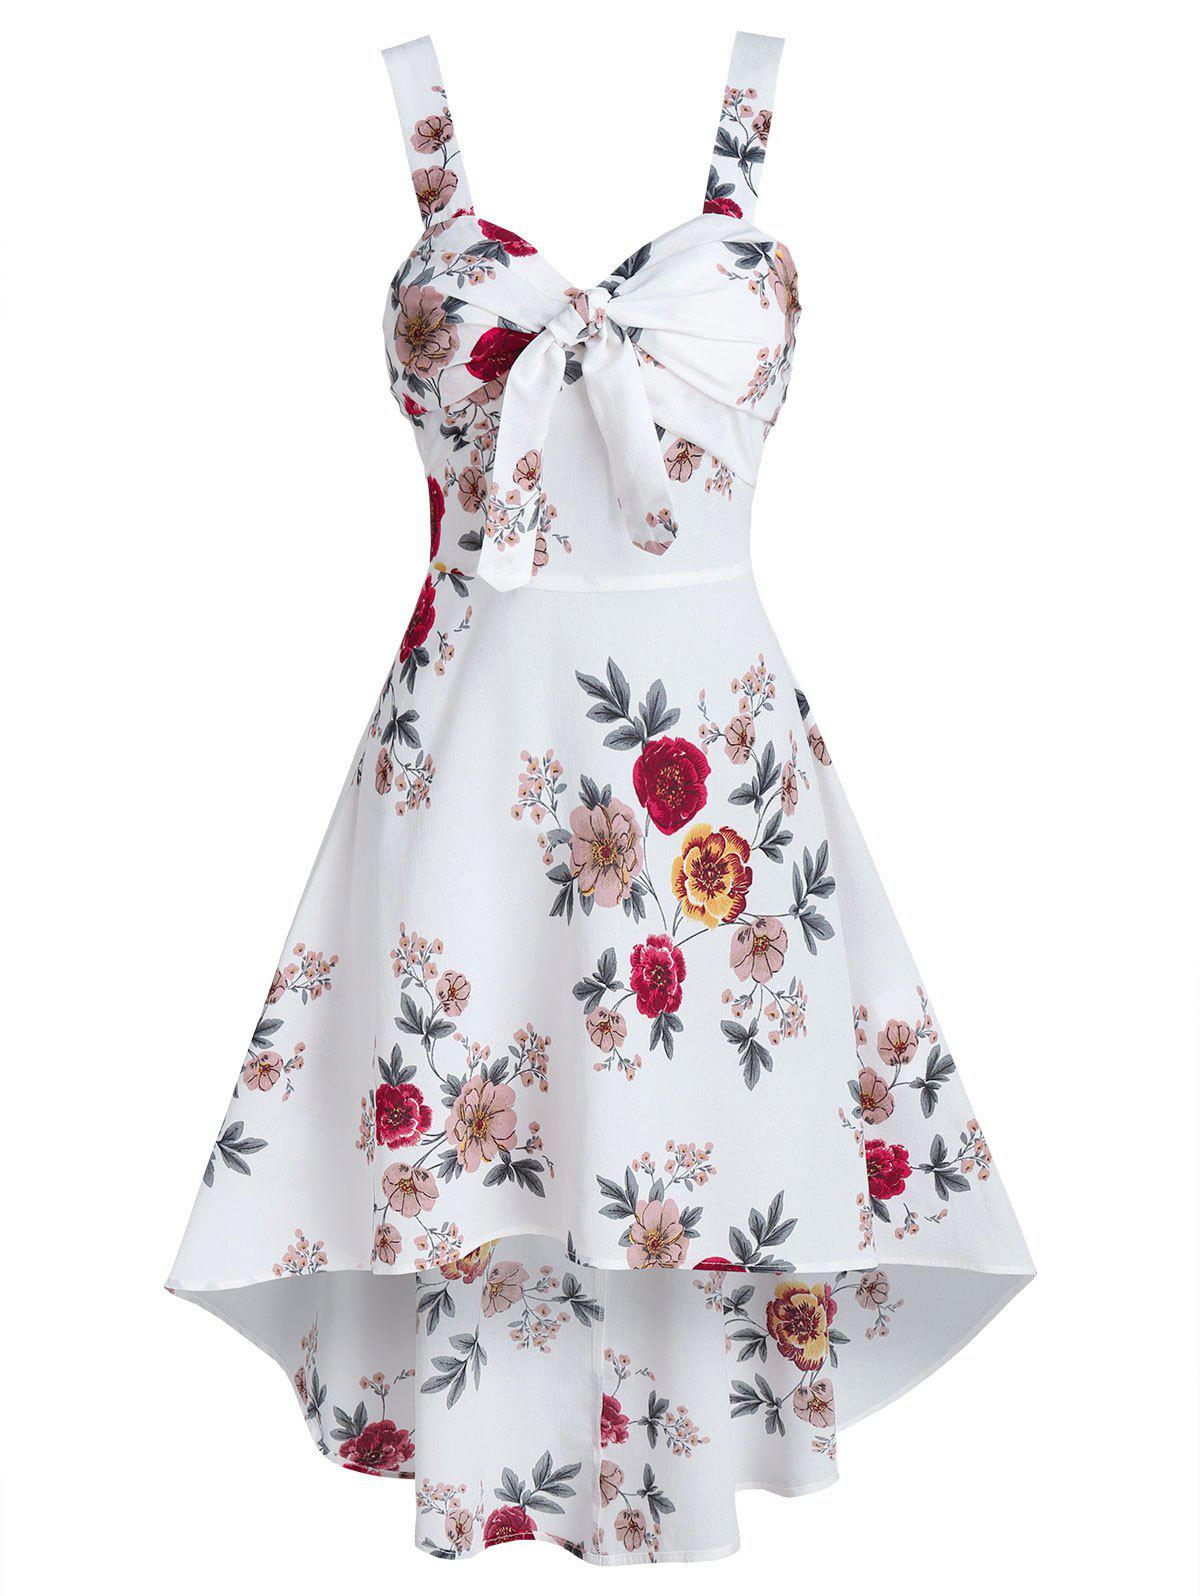 Floral Print Sleeveless Knotted High Low Dress - WHITE L